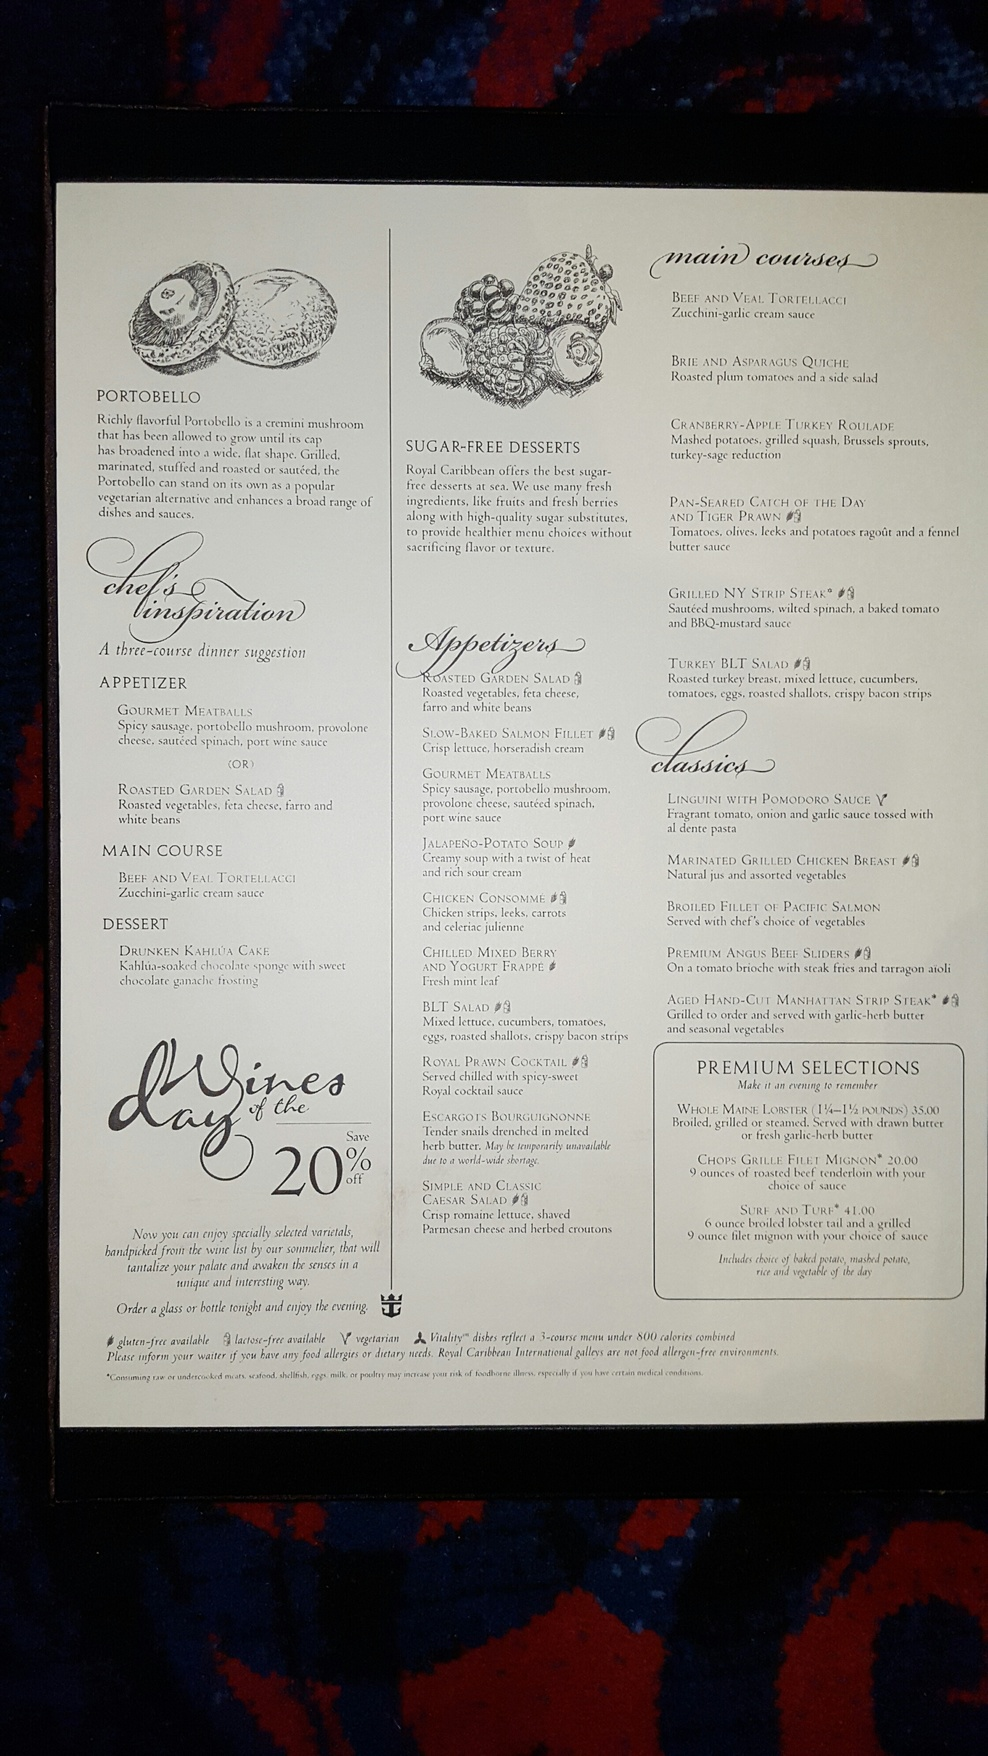 MDR Menu evening meal